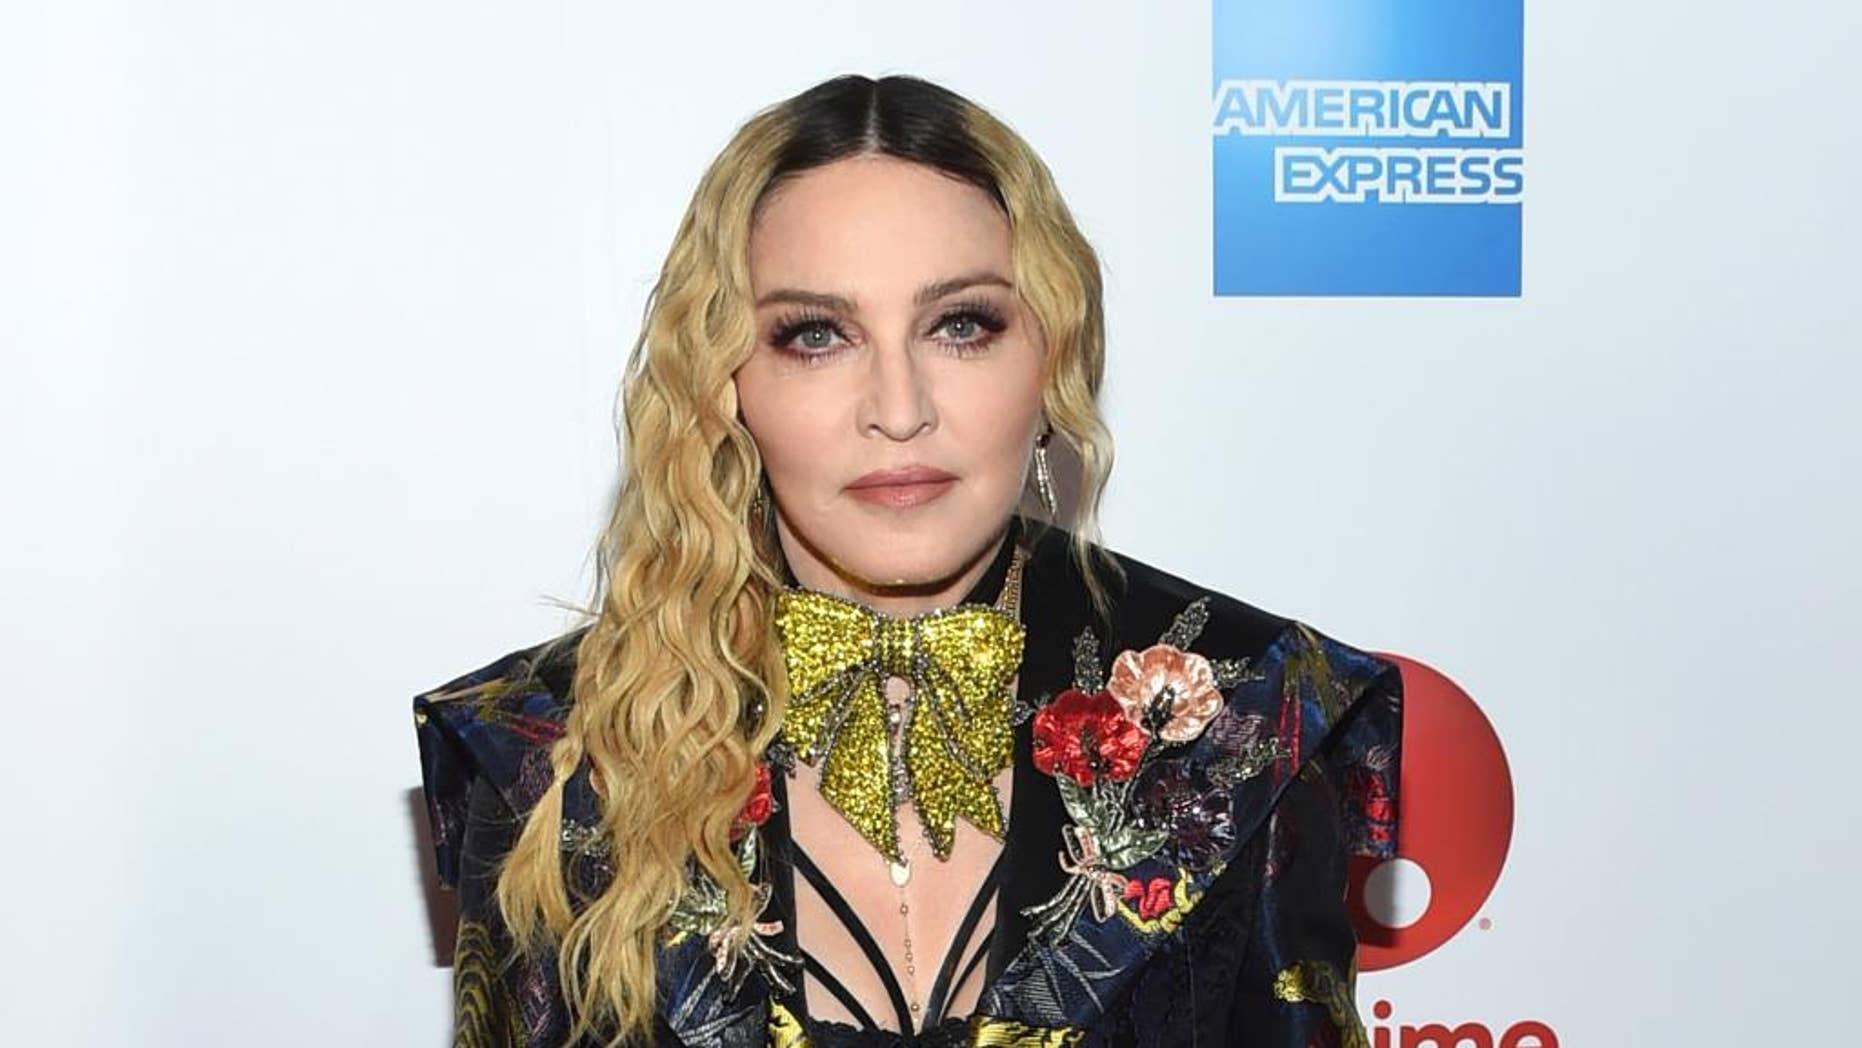 """Madonna isn't too happy about a planned biopic titled """"Blond Ambition."""" Here, she is shown in a Dec. 9, 2016 file photo."""